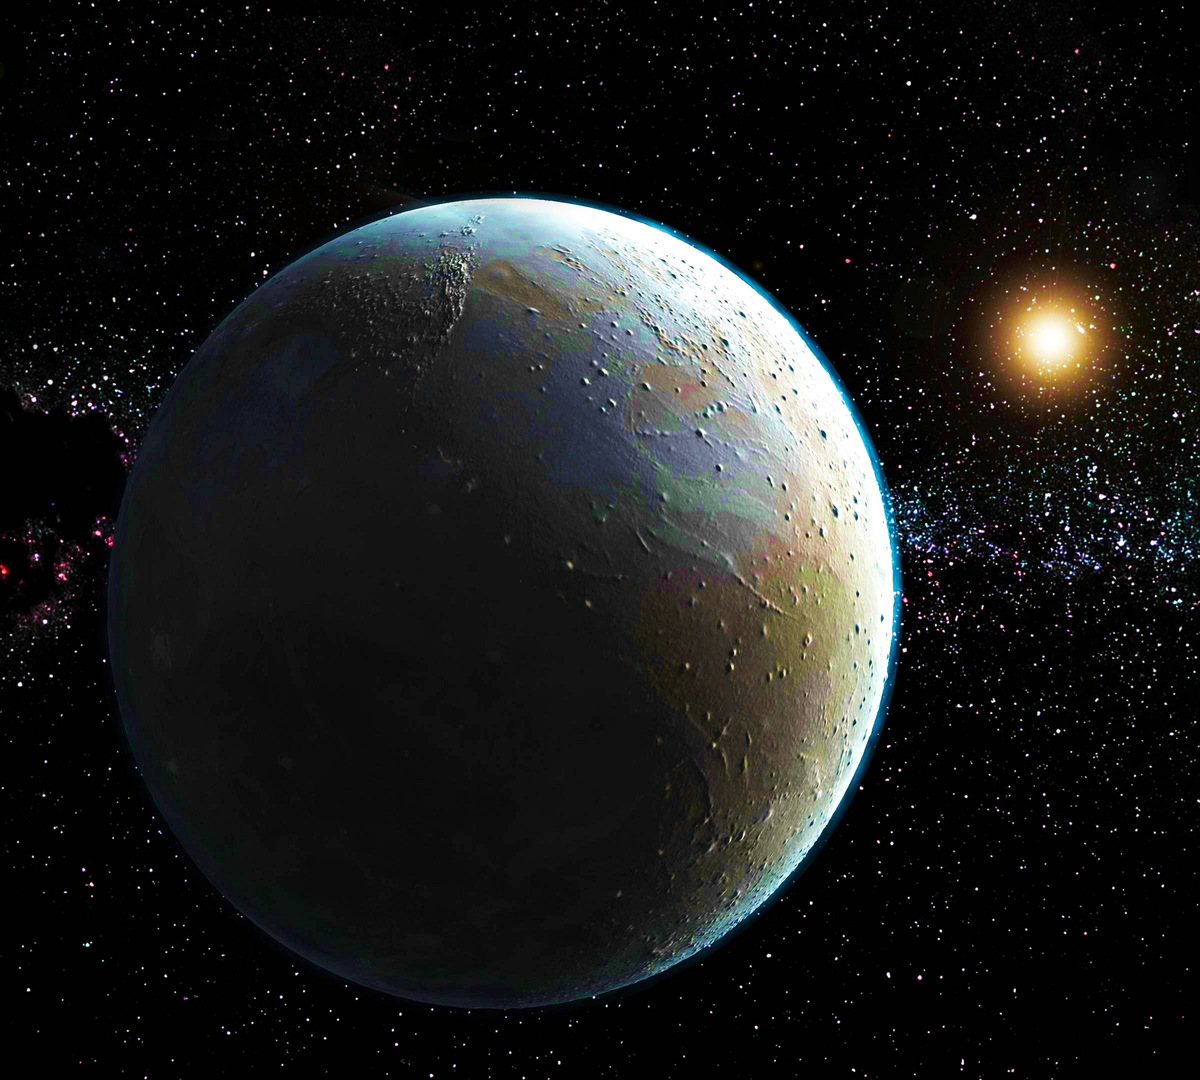 artist's impression of Pluto based on 2015 Nasa image